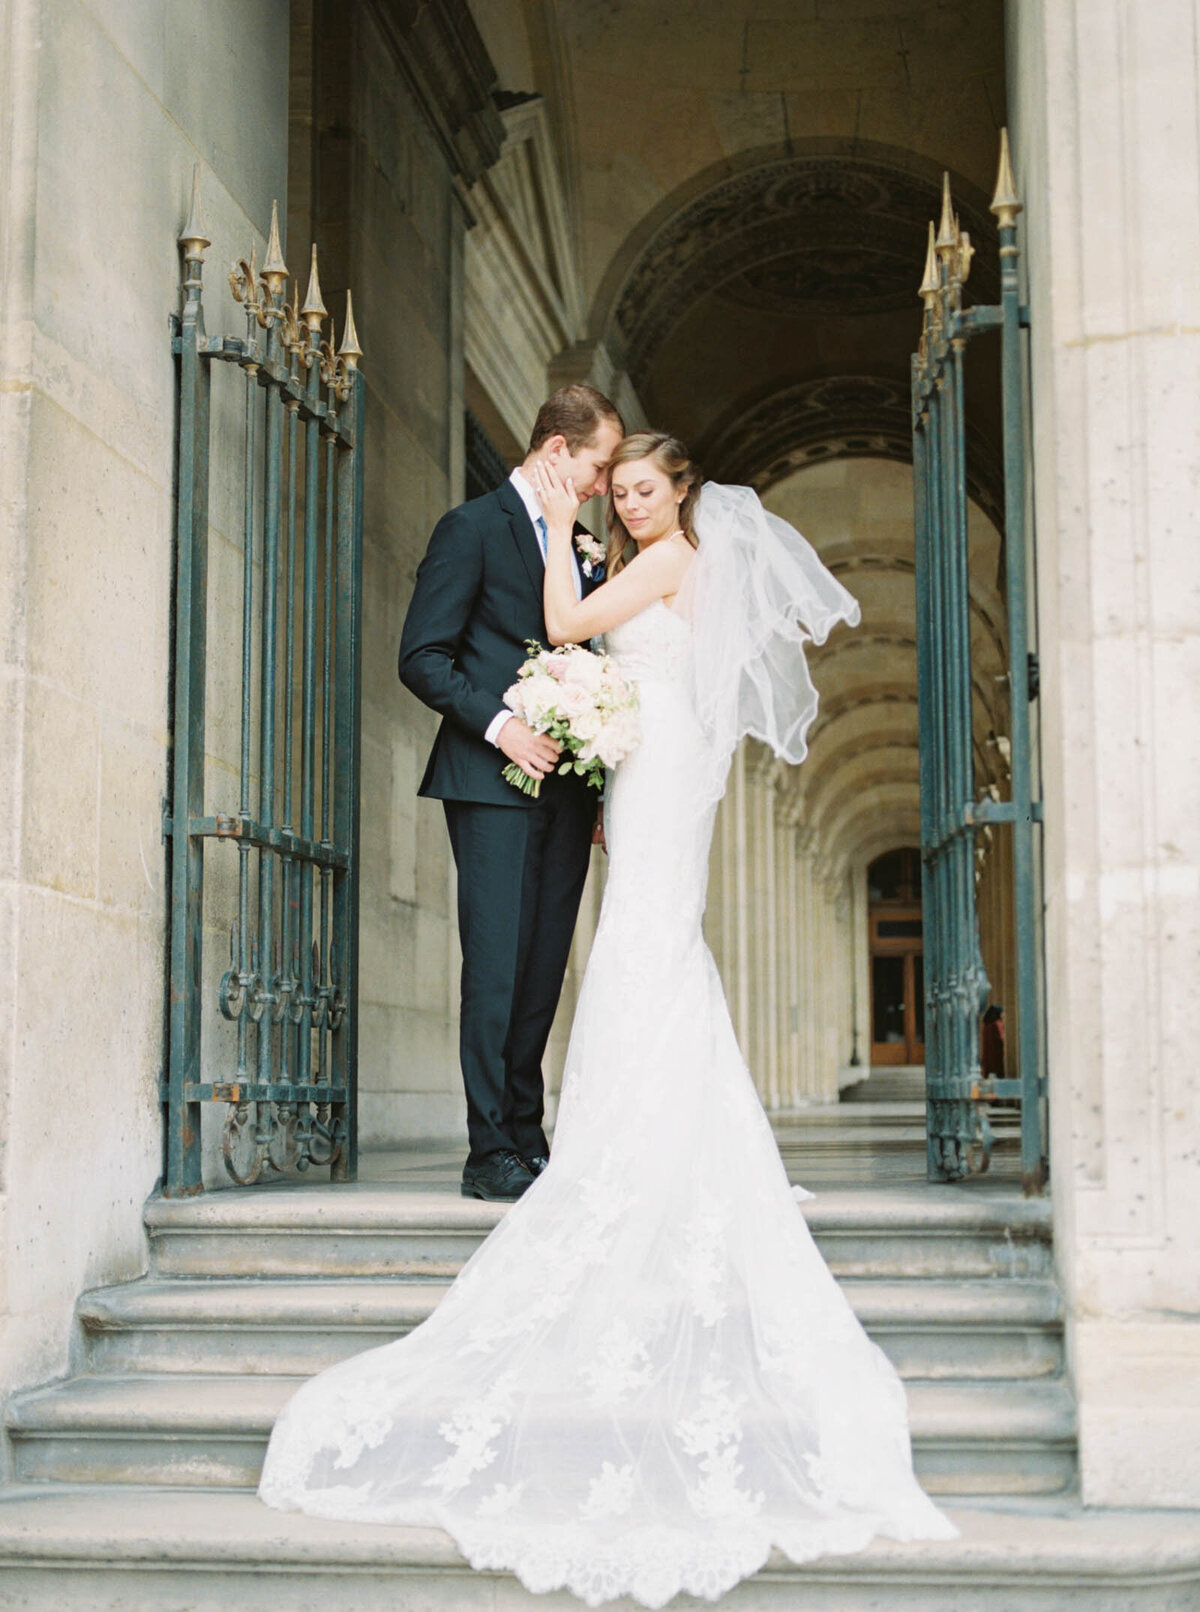 marcelaploskerphotography-paris_wedding-14